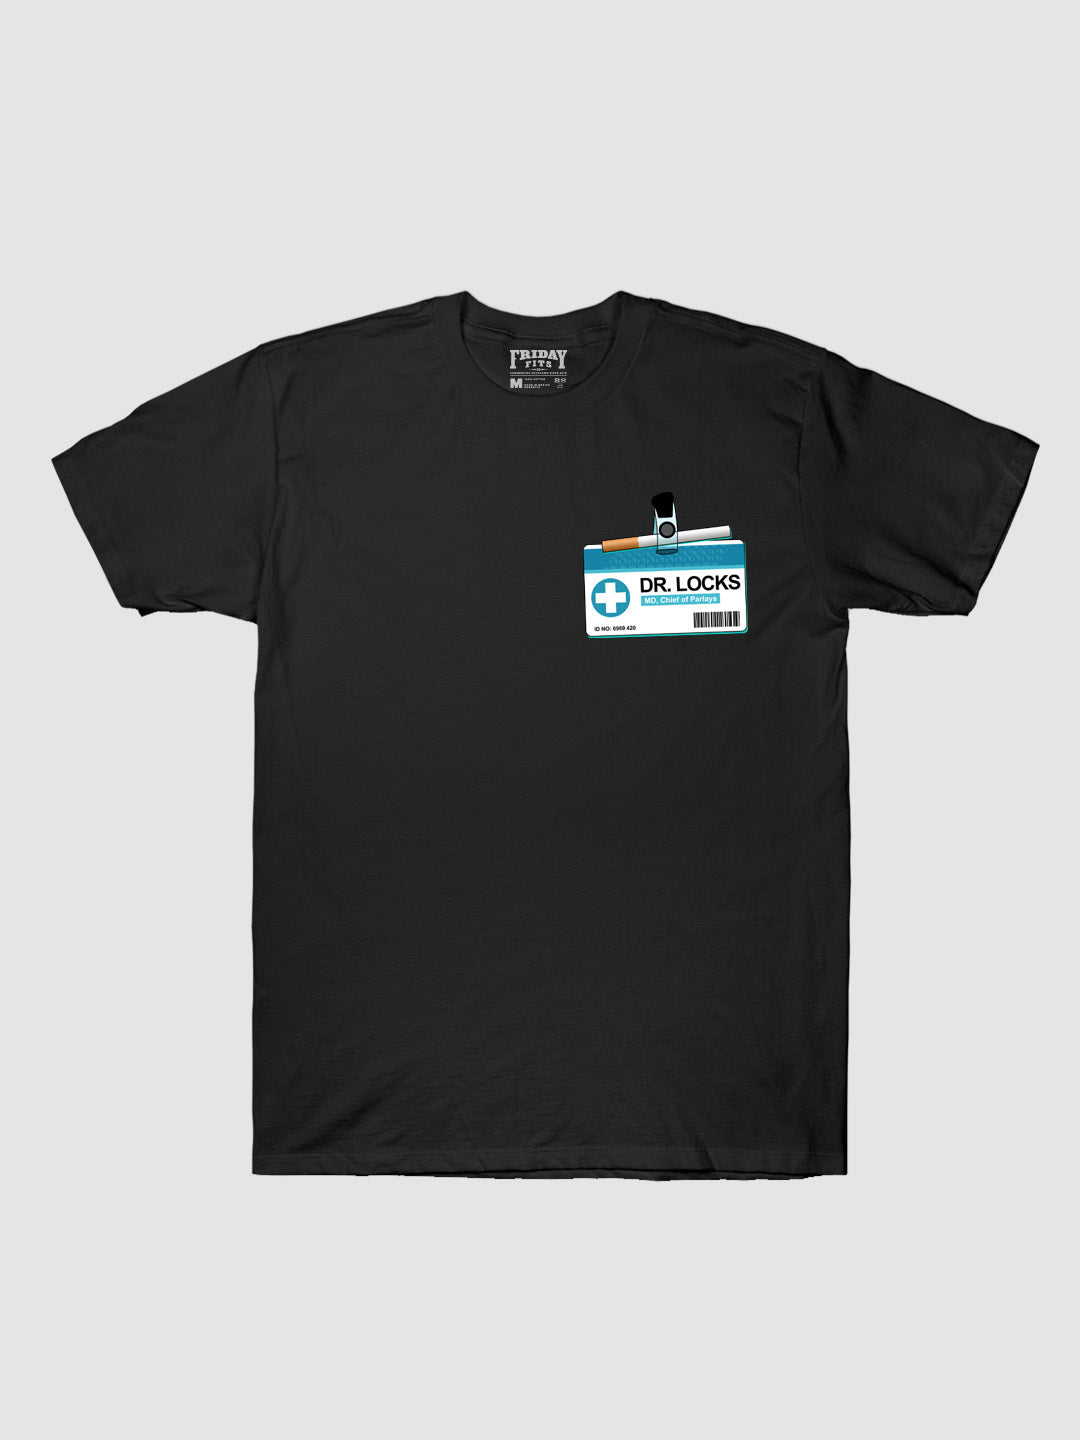 Dr. Locks T-Shirt